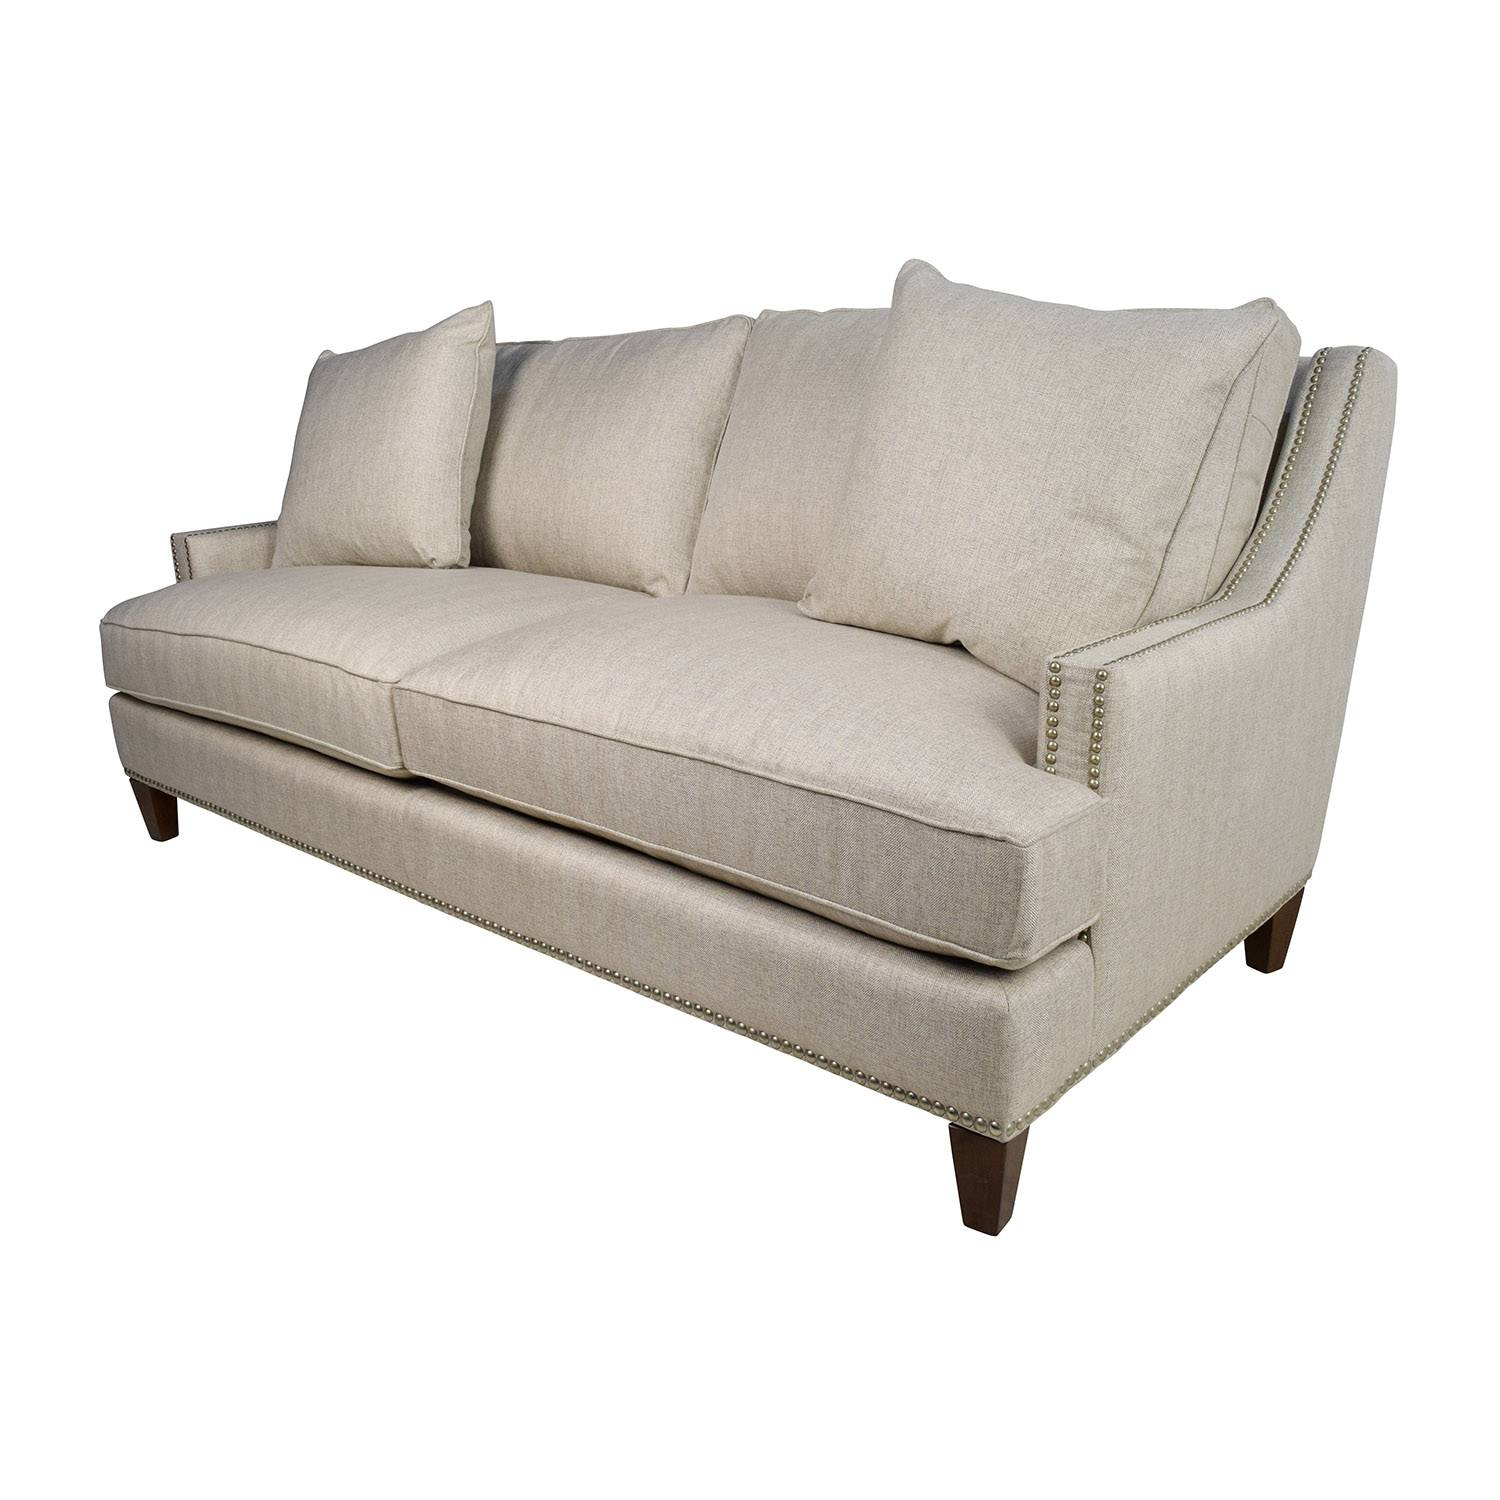 Sofas Center : Top Complaints And Reviews Aboutennifer within Sofa Convertibles (Image 29 of 30)